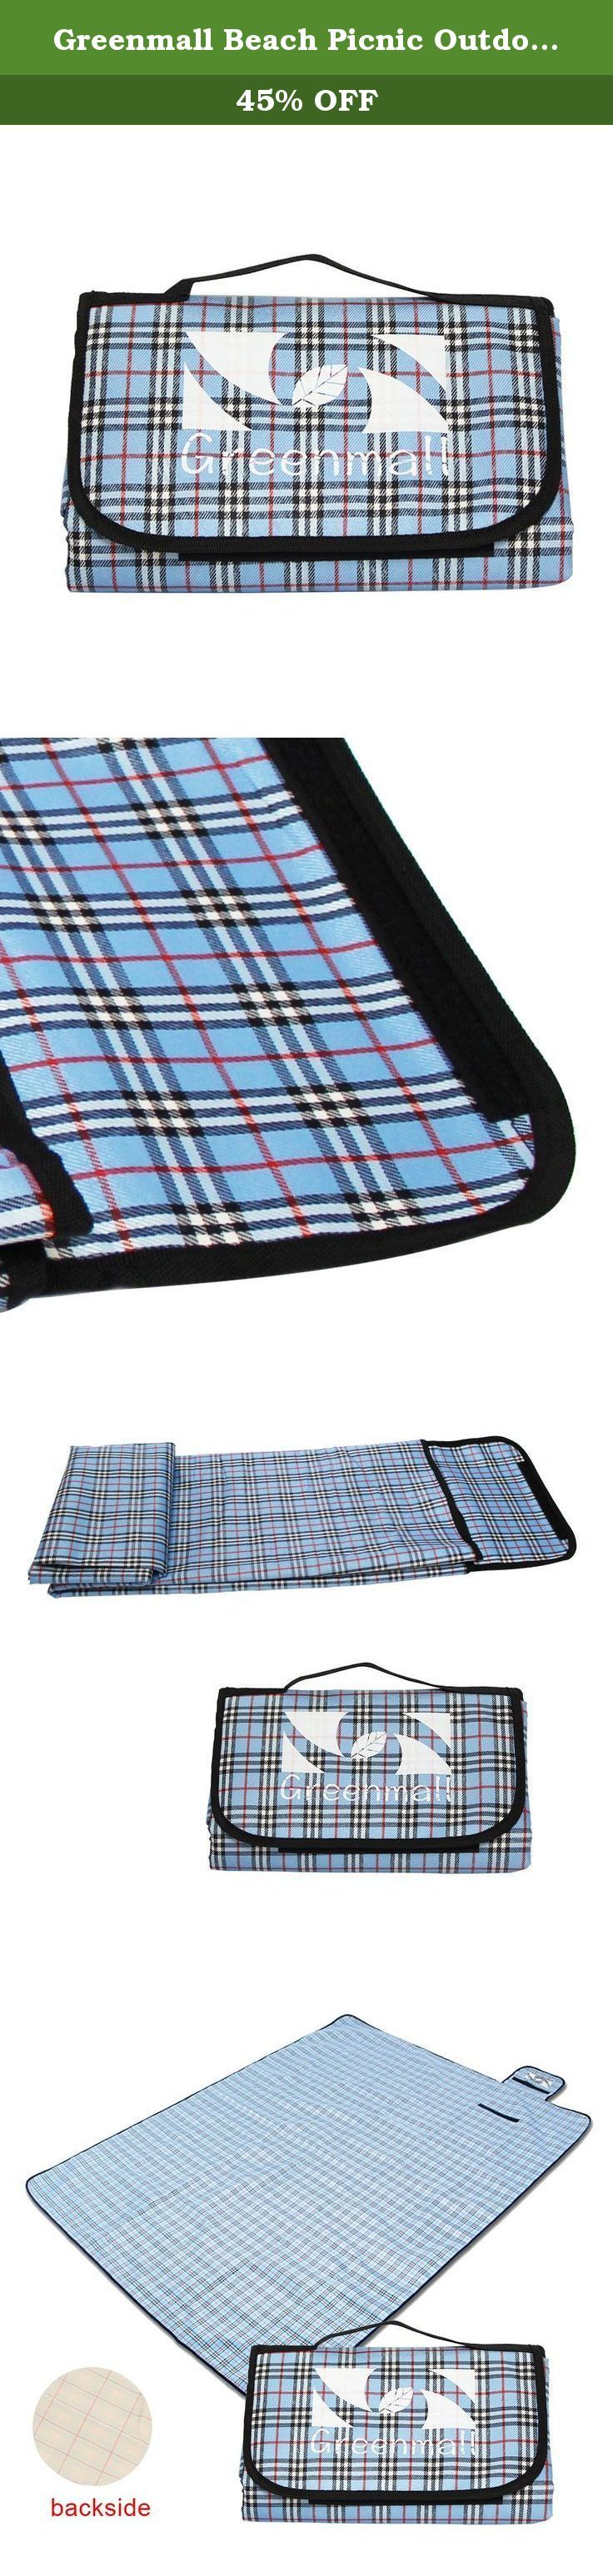 """Greenmall Beach Picnic Outdoor Mat Sand Free Picnic Blanket Large Waterproof Picnic Mat 60""""x72""""(150180cm ) (blue). greenmall."""